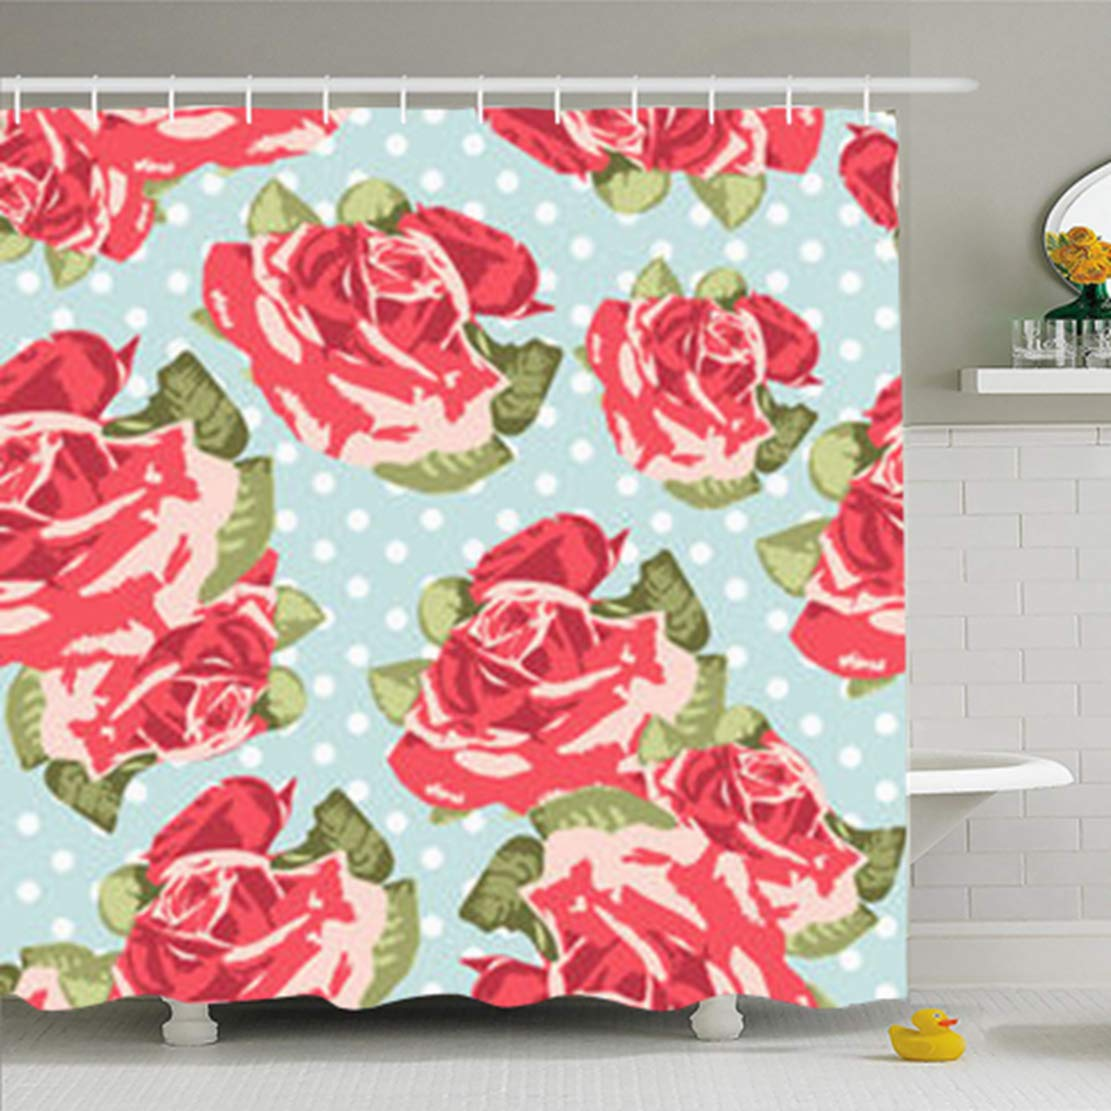 Alfredon Shower Curtains for Bathroom 66 x 72 Inches Bloom Rose Pattern Blue Polka Style Vintage Pink Flower English Roses Floral Romantic Garden Waterproof Fabric Home Decor Set with Hooks